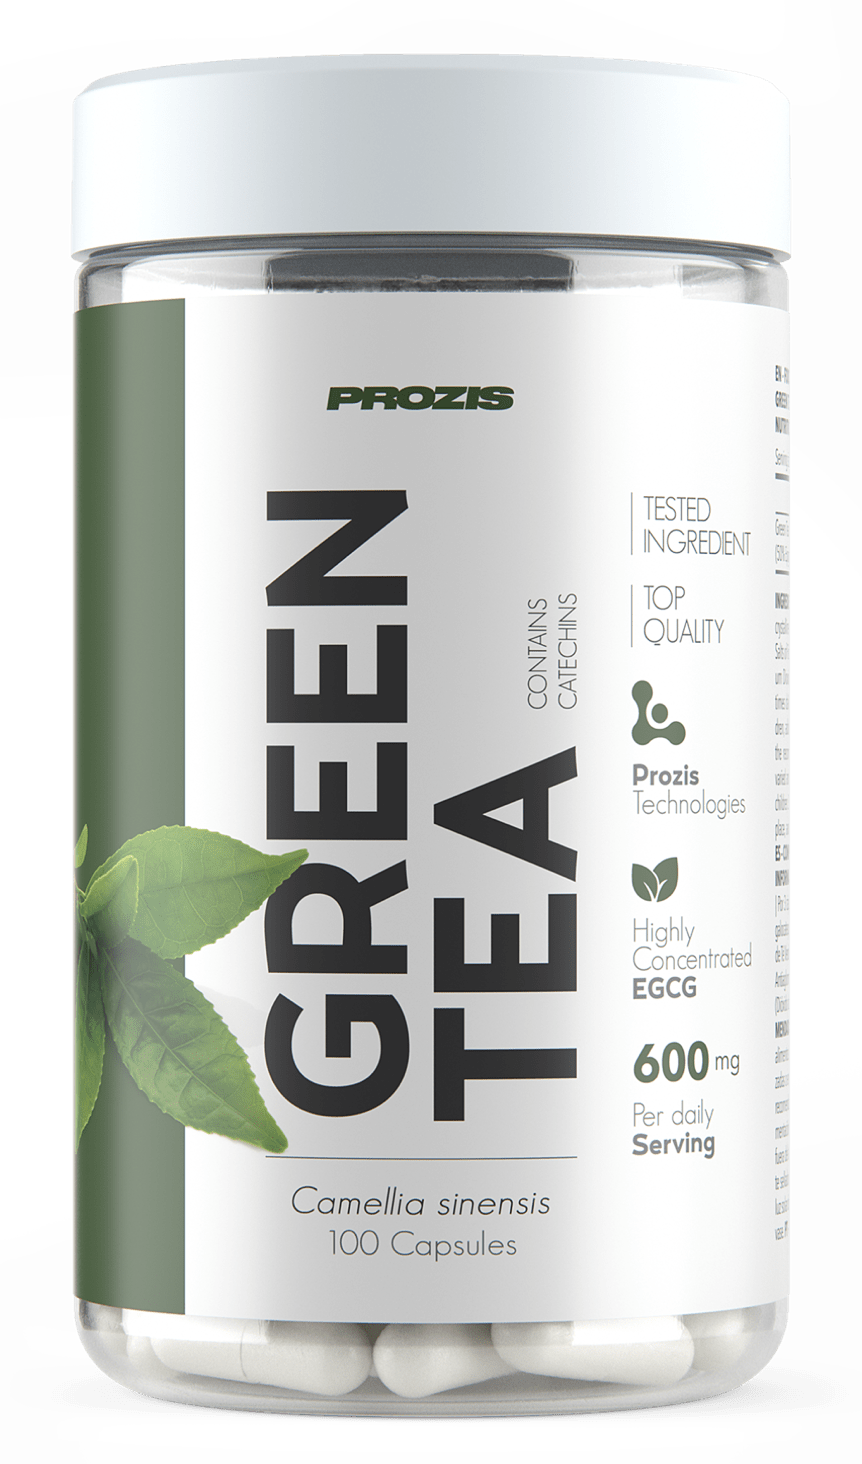 Prozis Green Tea EGCG